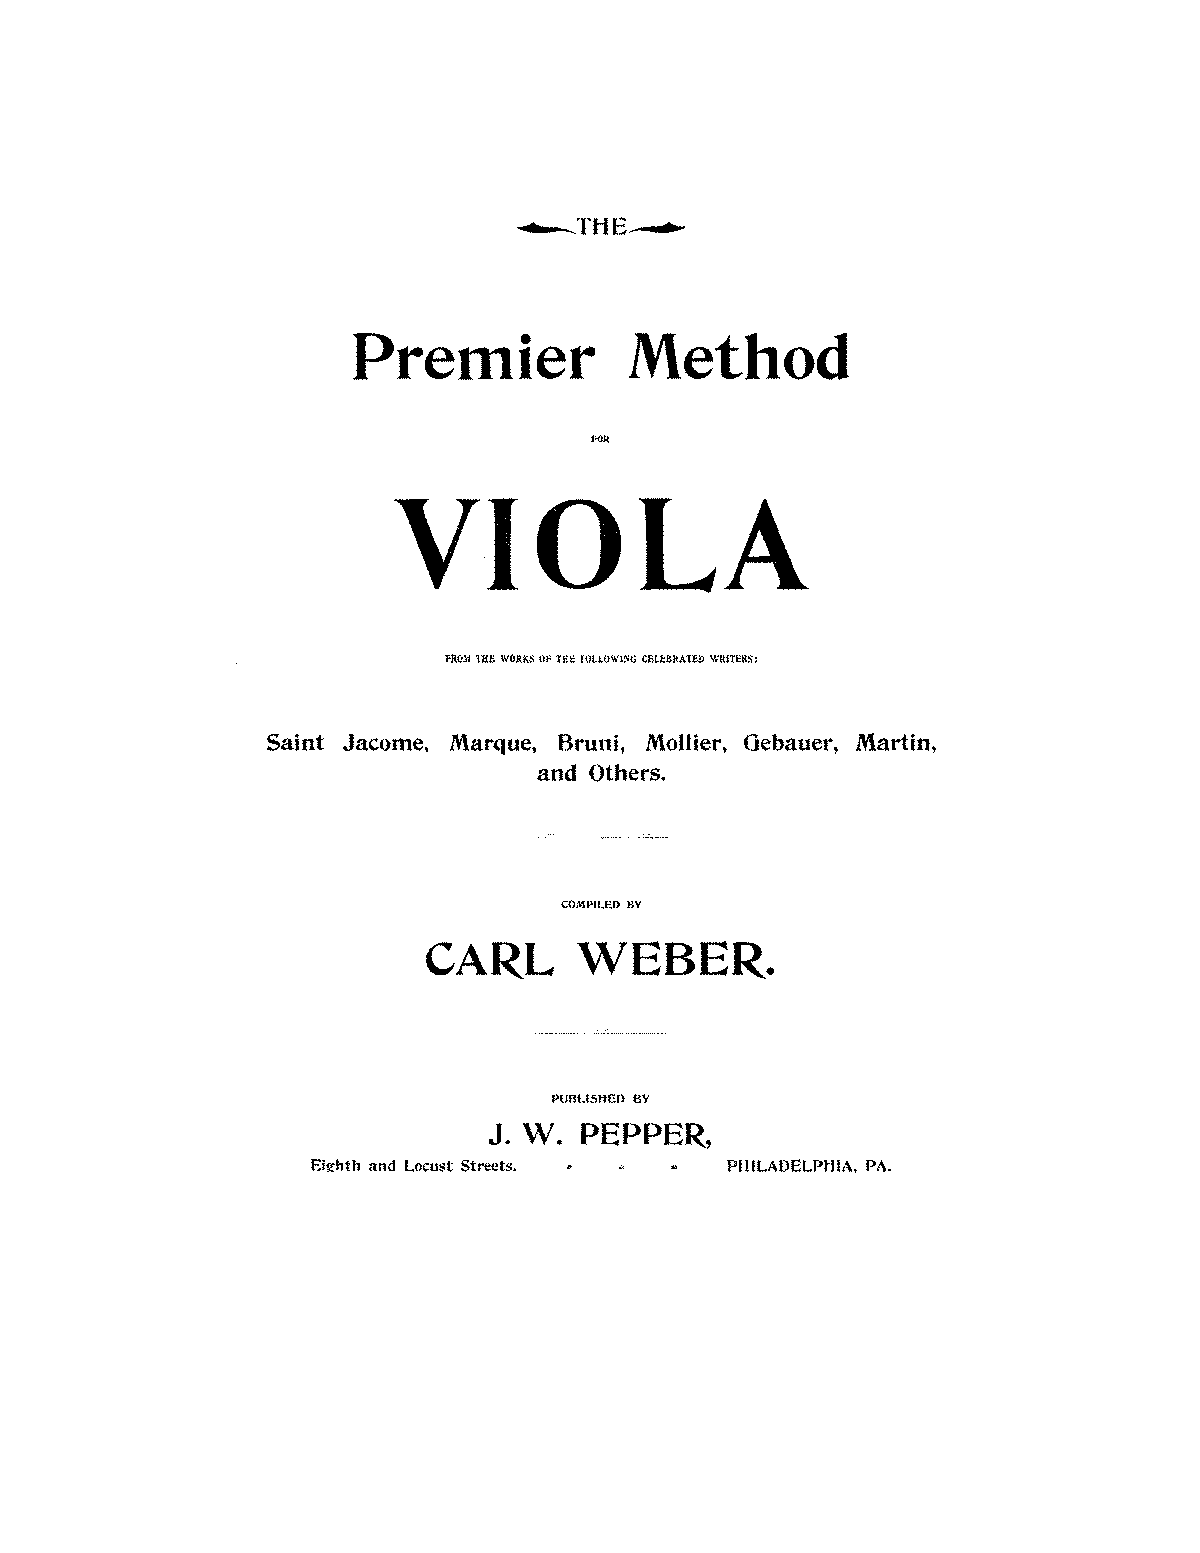 PMLP456746-WEBER.Carl Premier Method VA 50 pages of Duets.pdf